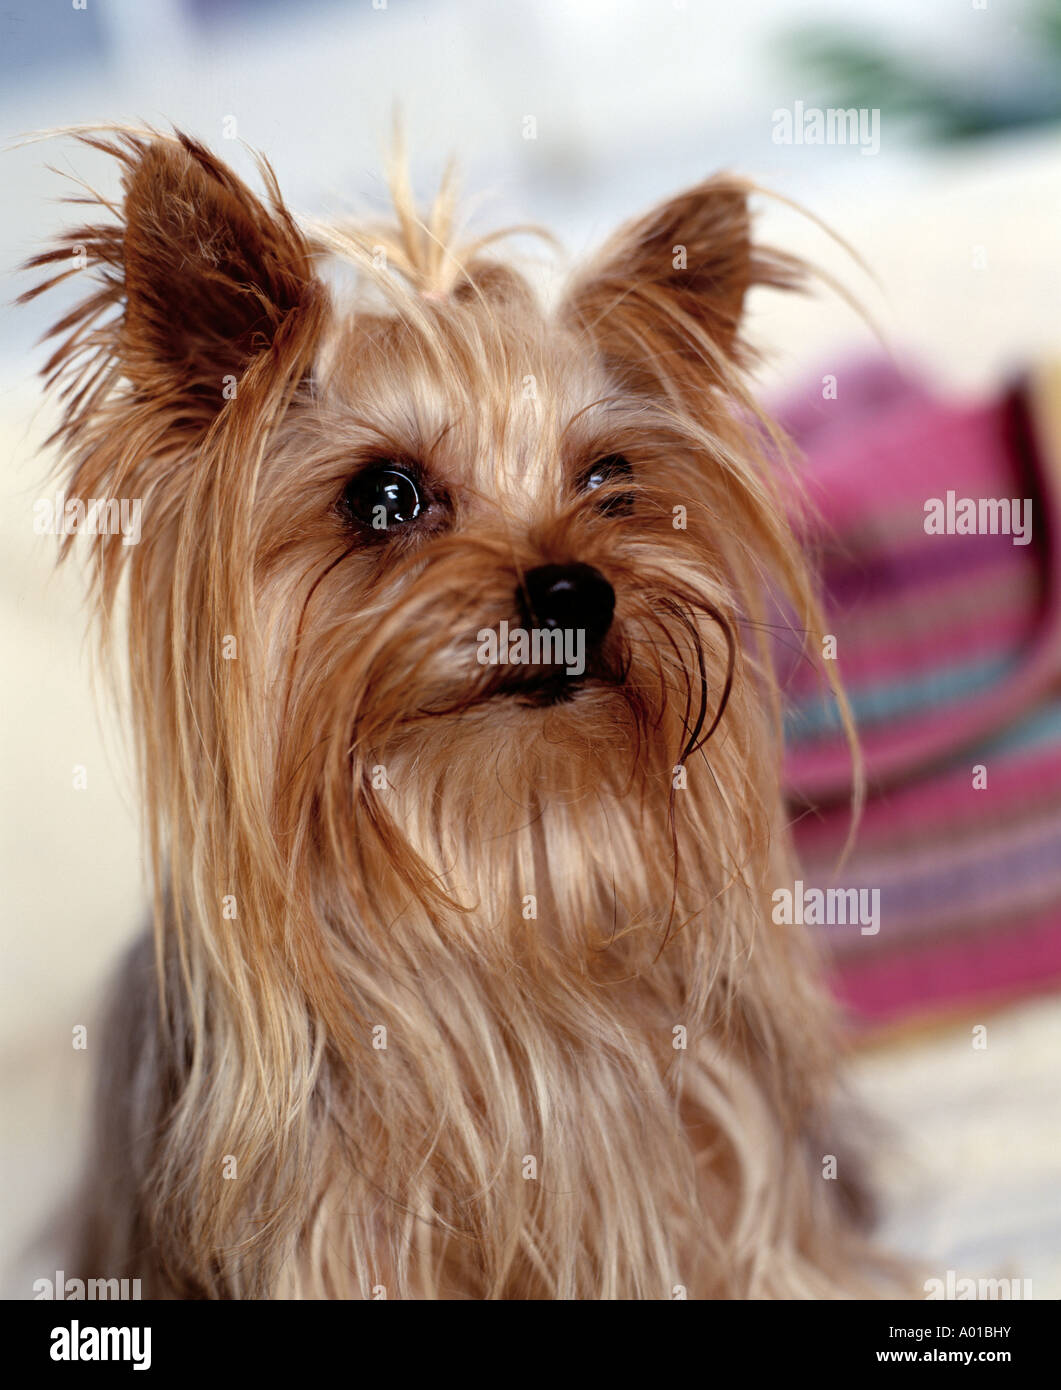 Yorkshire Terrier on sofa - Stock Image